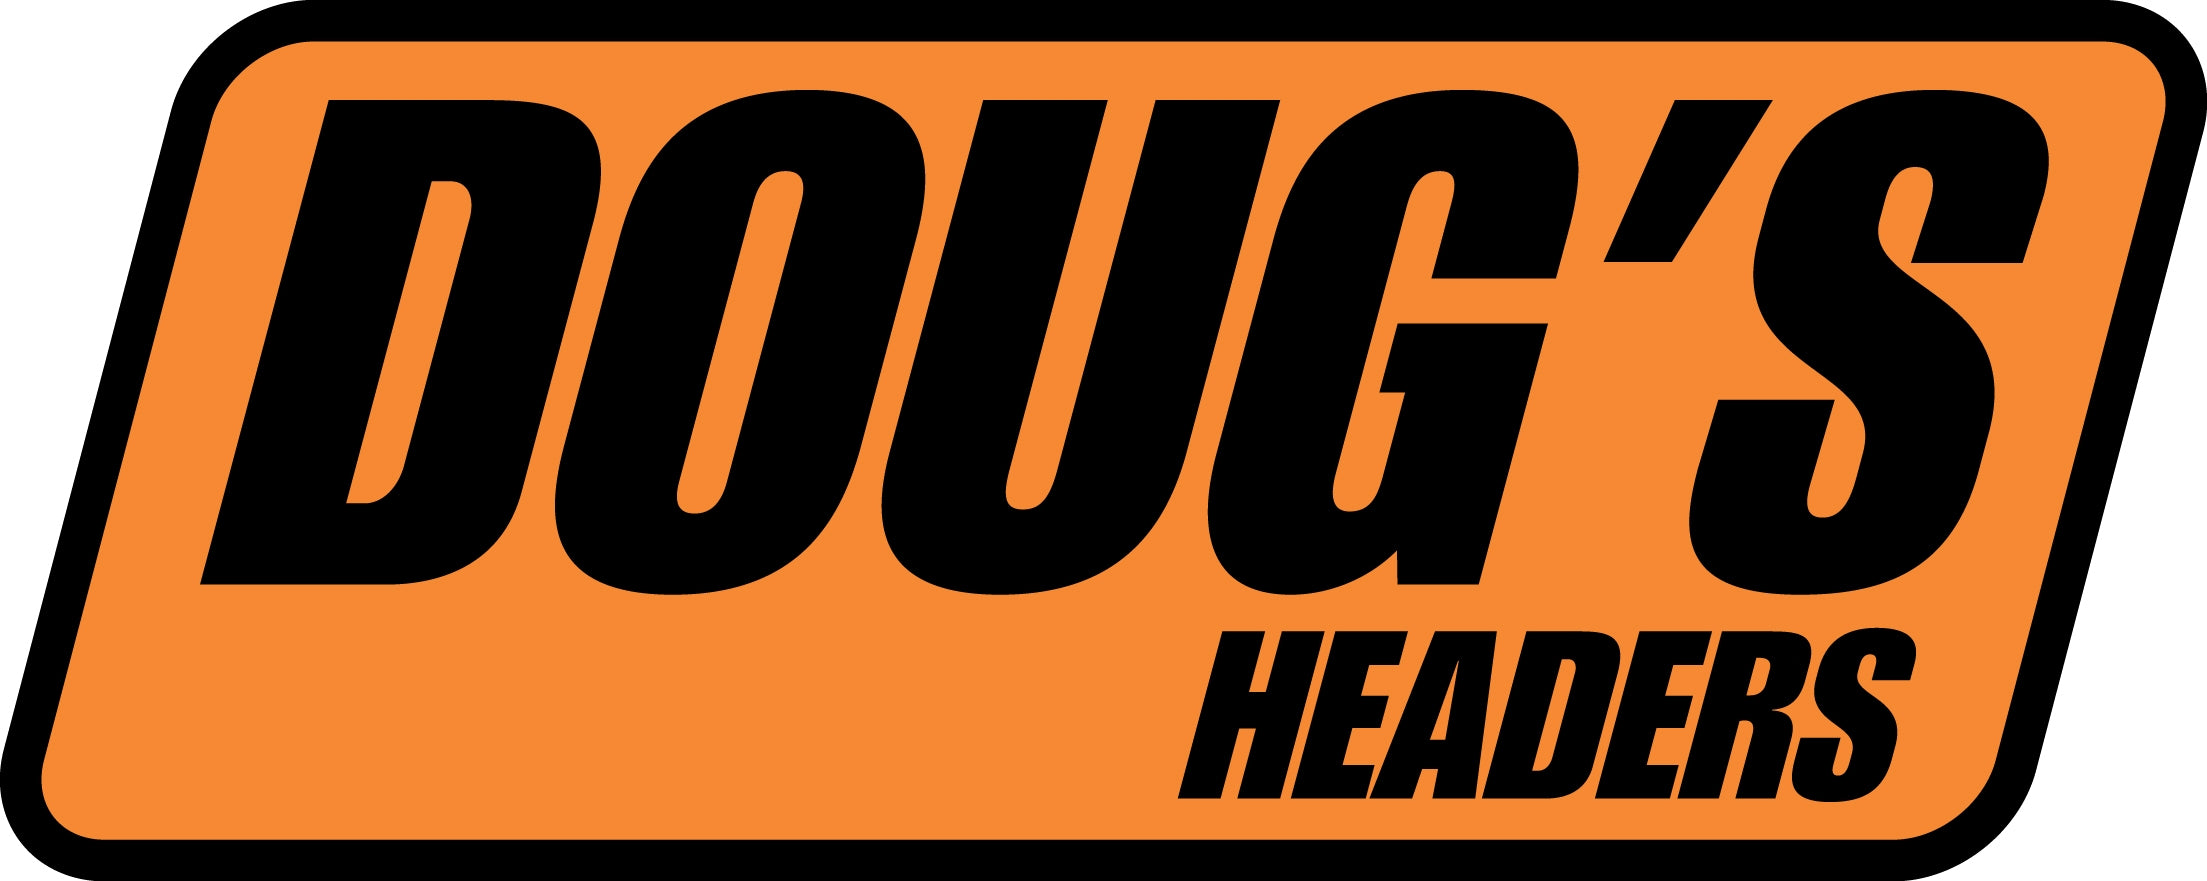 Doug's Headers DD200 Sticker Doug's Headers Large 8 x 3